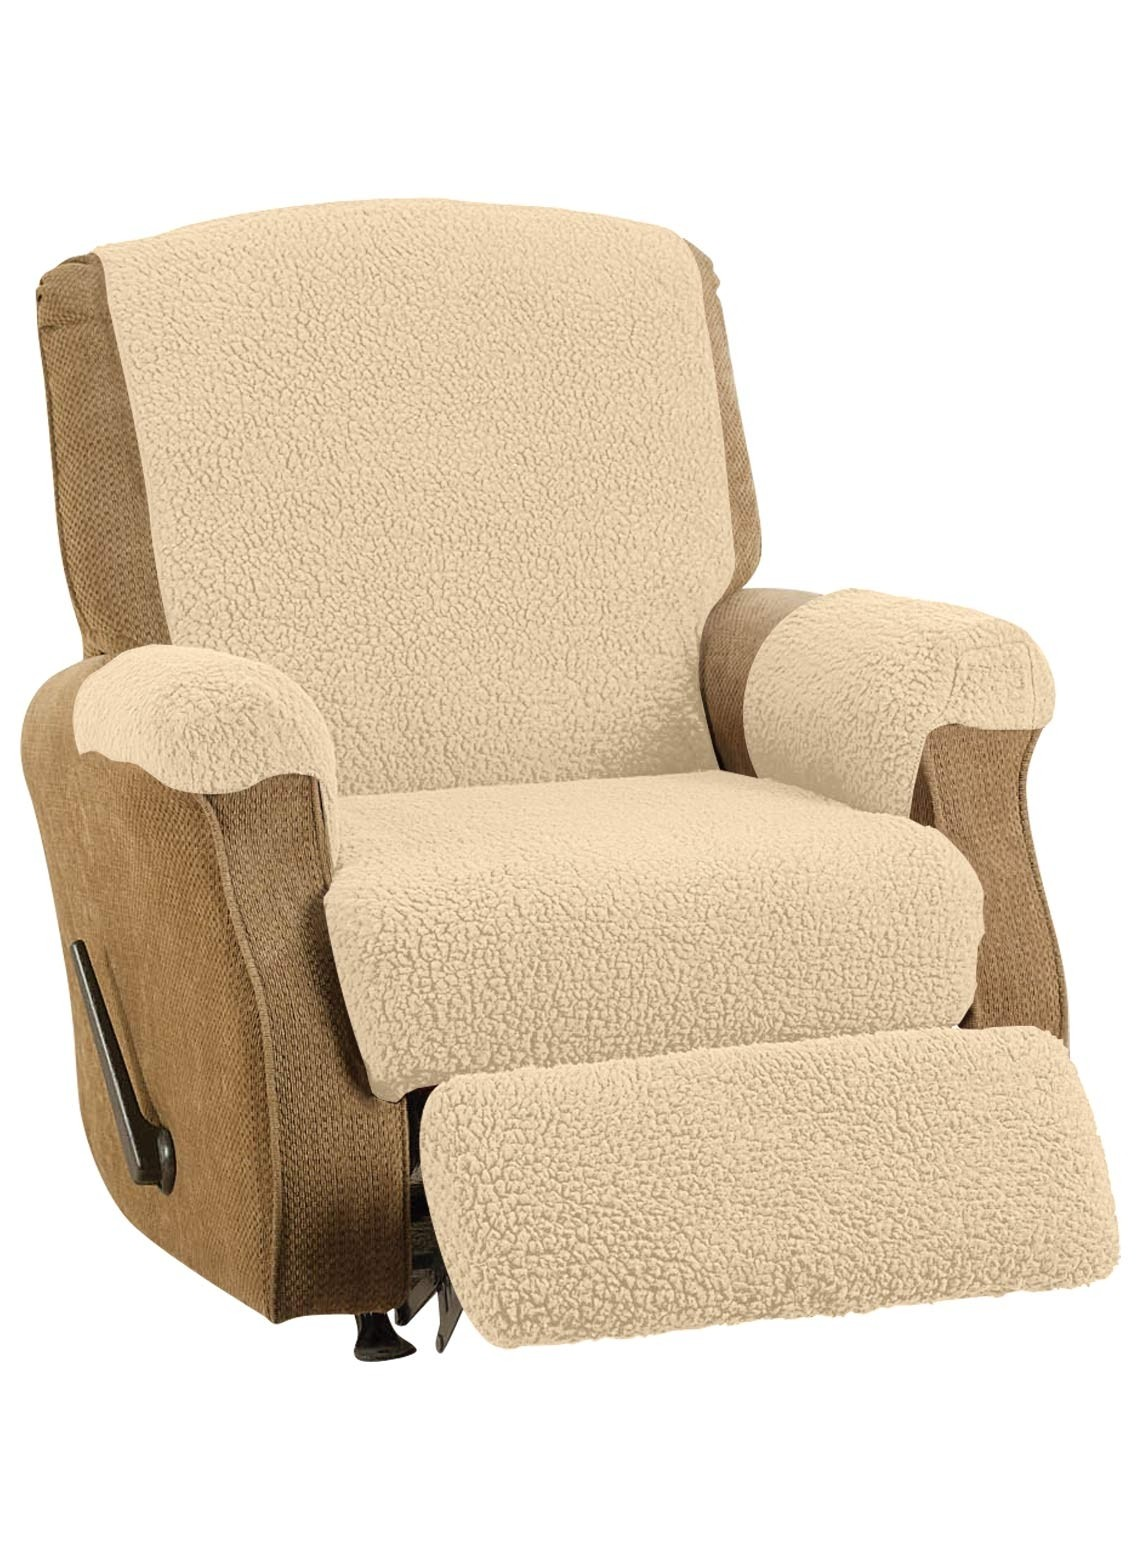 electric recliner chair covers australia pvc adirondack chairs best for sale ideas on foter fleece cover color natural